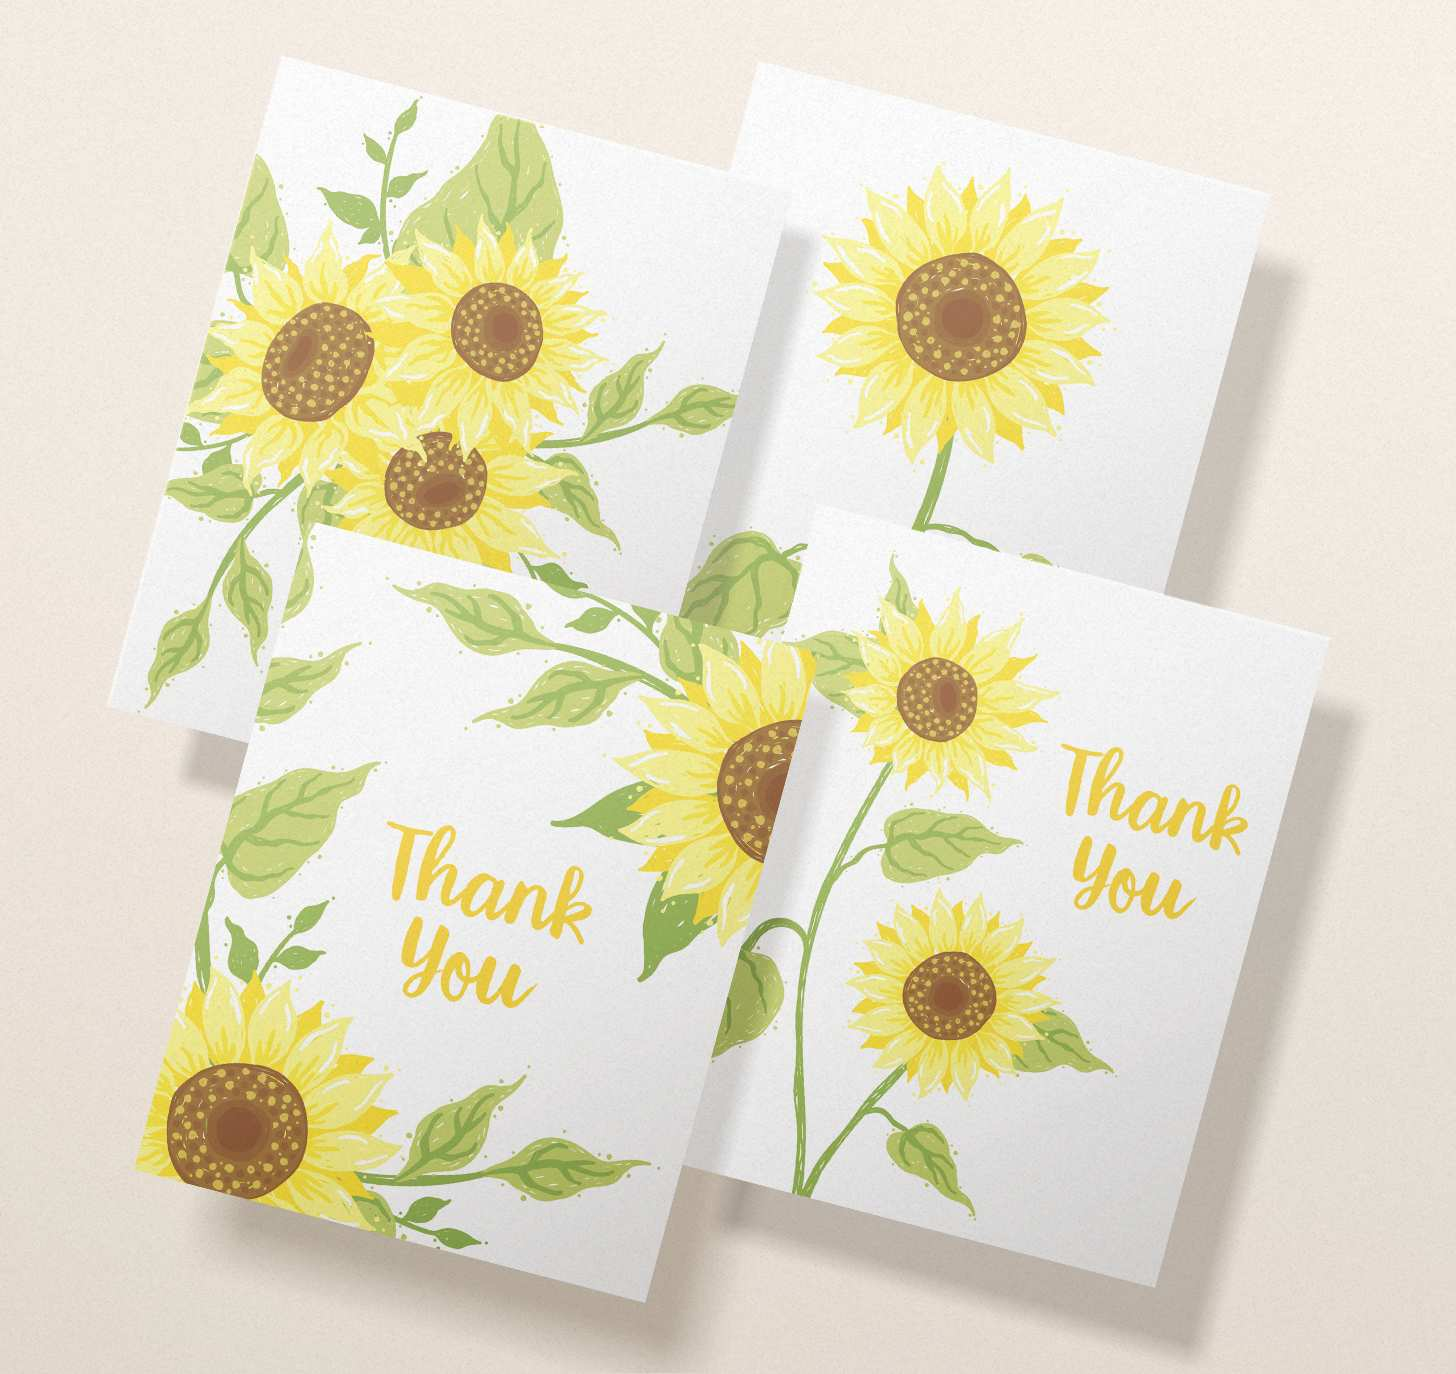 Four overlapping assorted yellow sunflower card designs